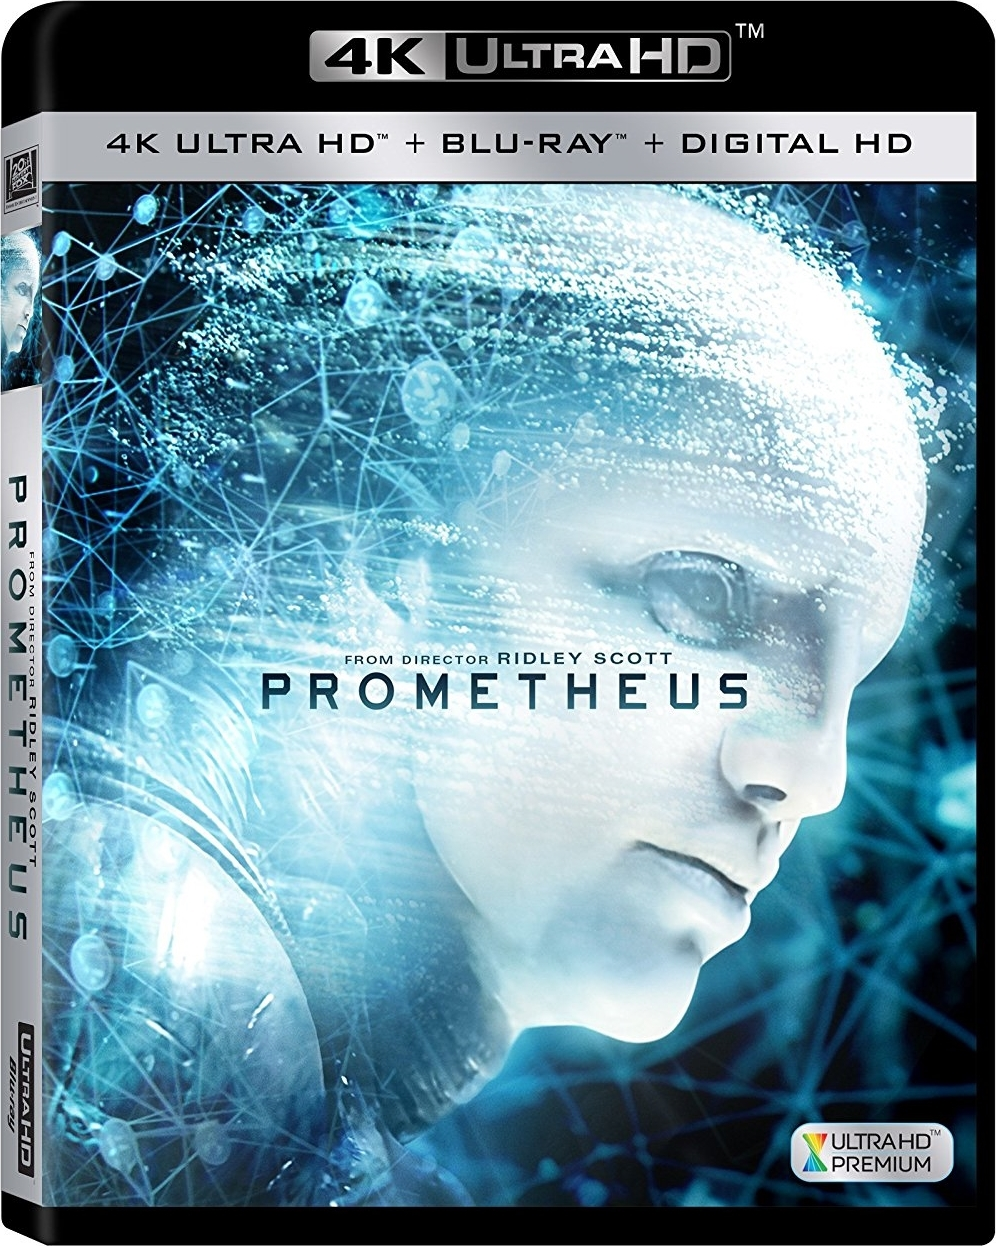 Prometheus 4K (2012) UHD Ultra HD Blu-ray